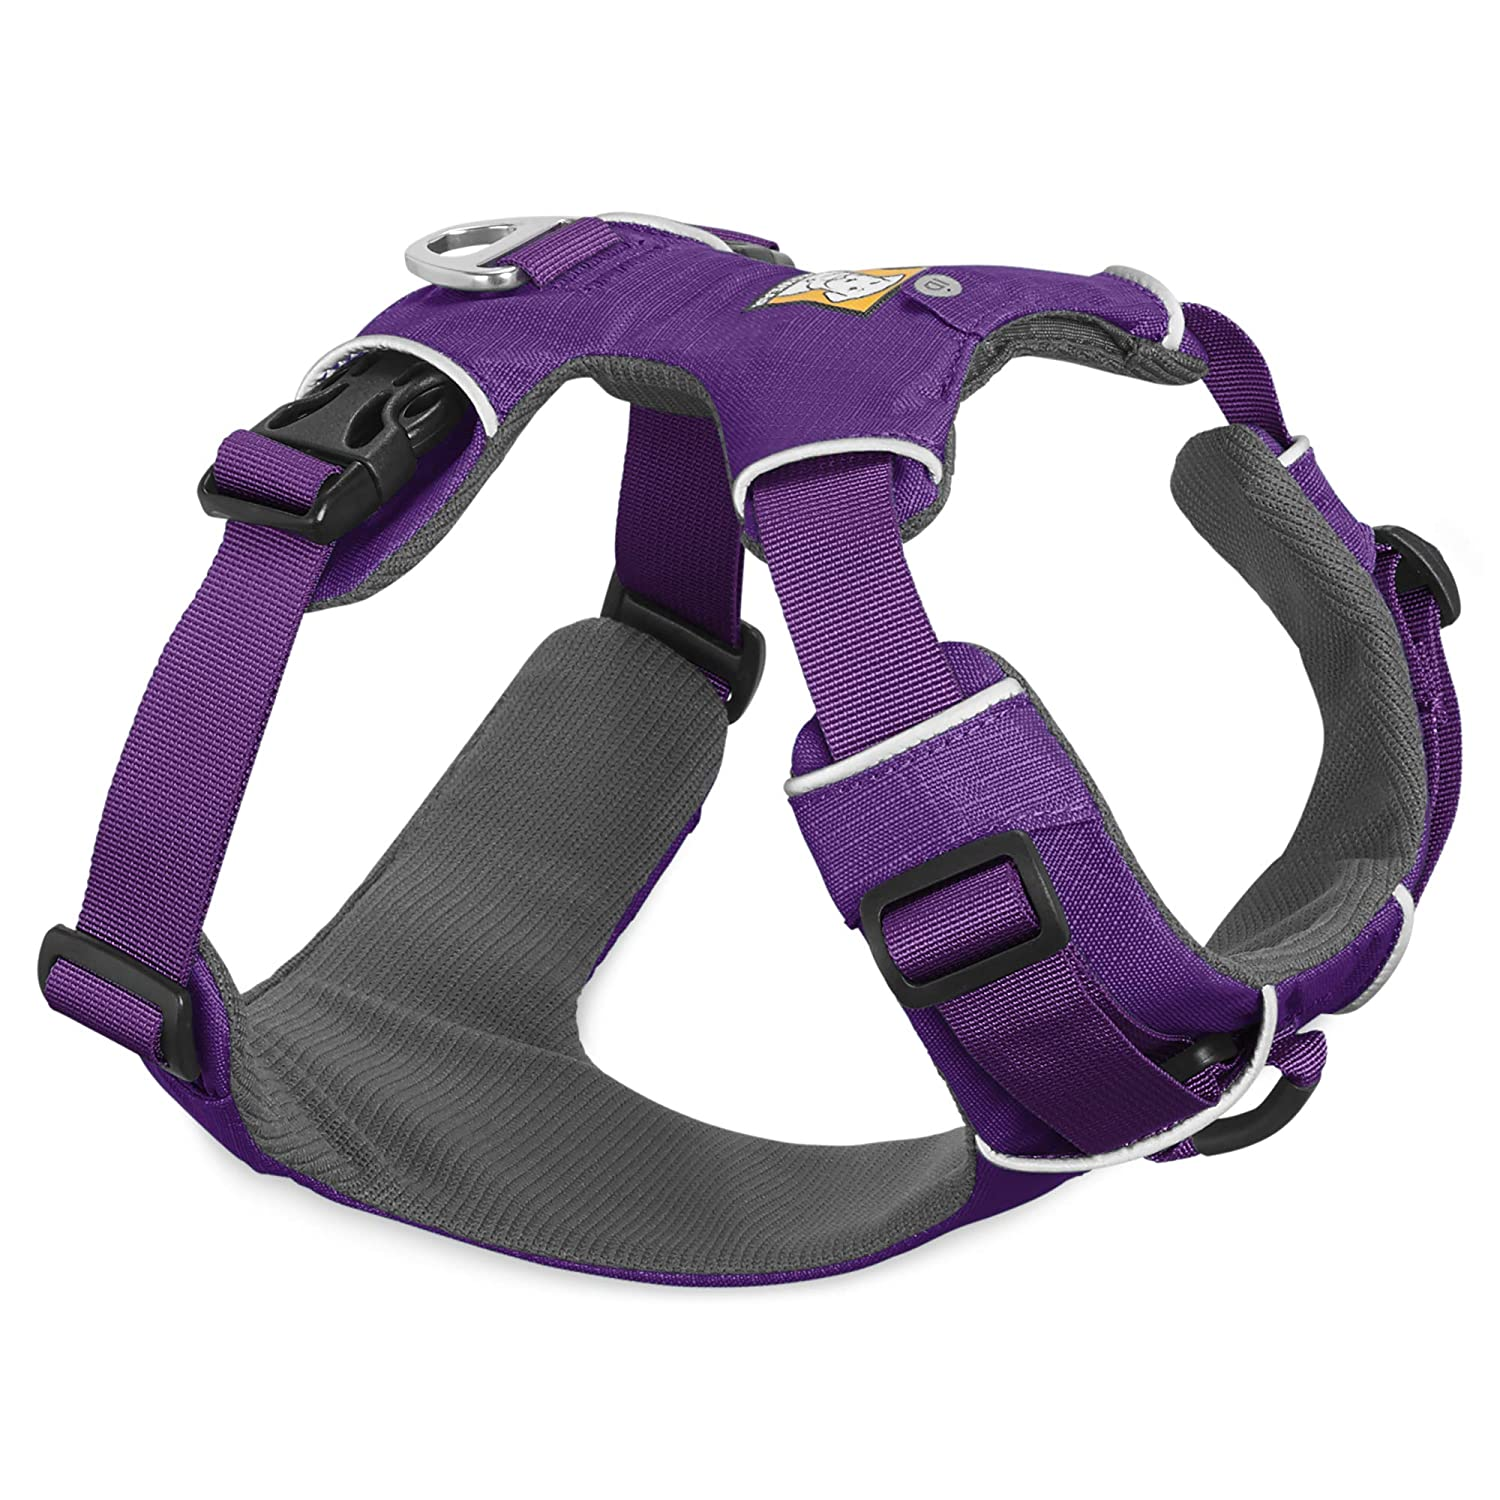 Best Dog Harness: Reviews and Buying Guide for 2019 6